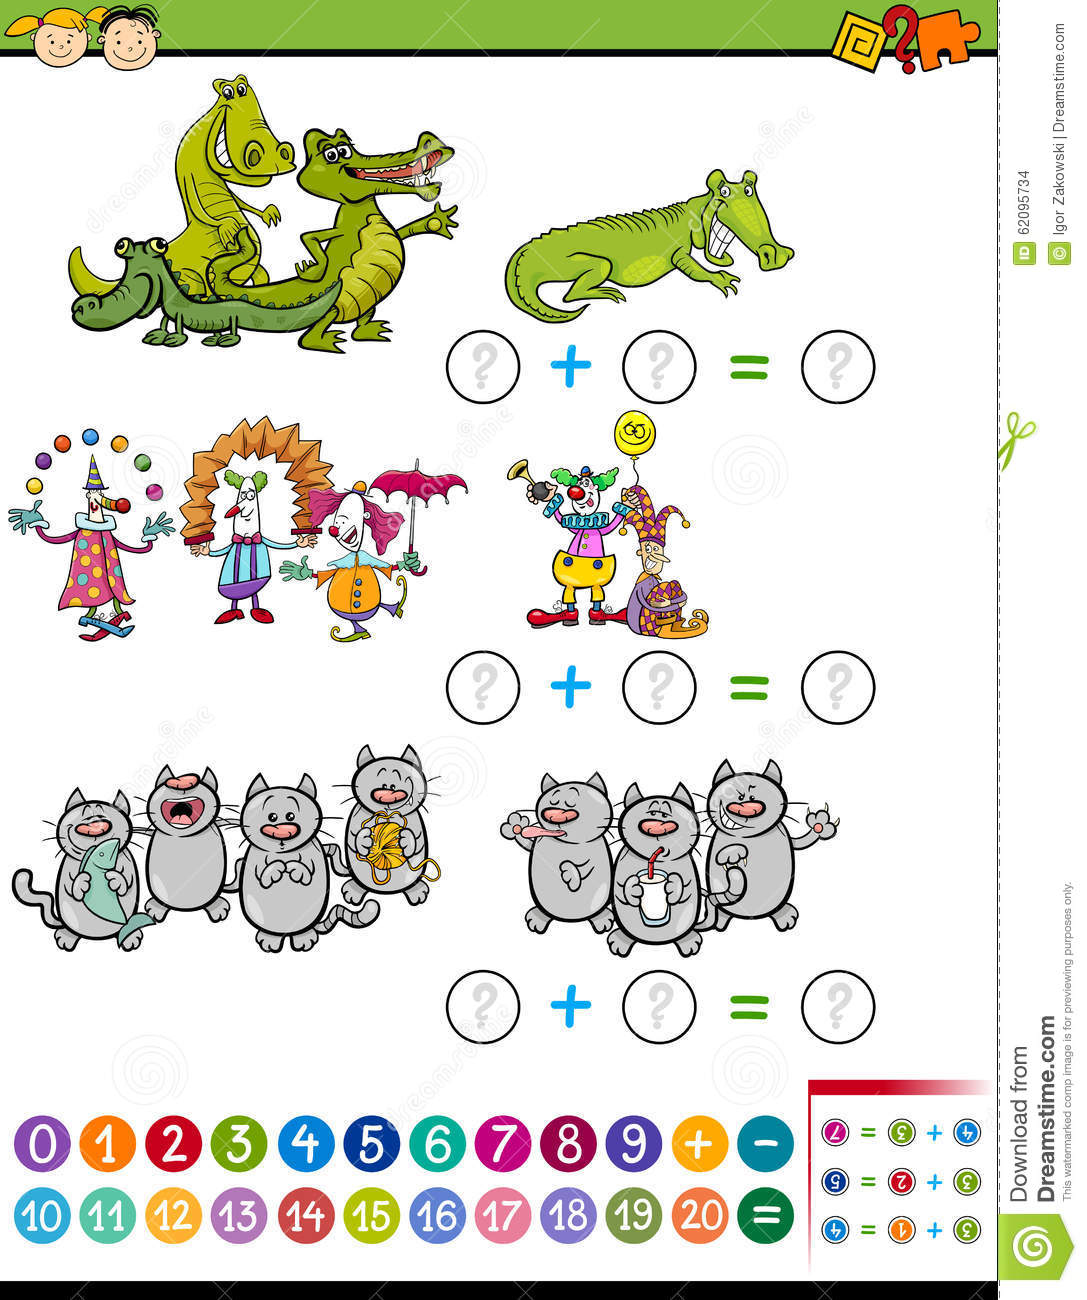 Addition Task Preschool Kids Cartoon Illustration Education Mathematical Calculating Children Funny Characters besides Worksheet On Number in addition Counting Educational Children Game Kids Activity Worksheet How Many Objects Task Christmas Winter Holidays Theme Learning also Trace Ladybug besides Count The Chocolate Chips In Each Cookie Math Literacy Preschool Counting Activity Number Words. on number 23 worksheet for preschool